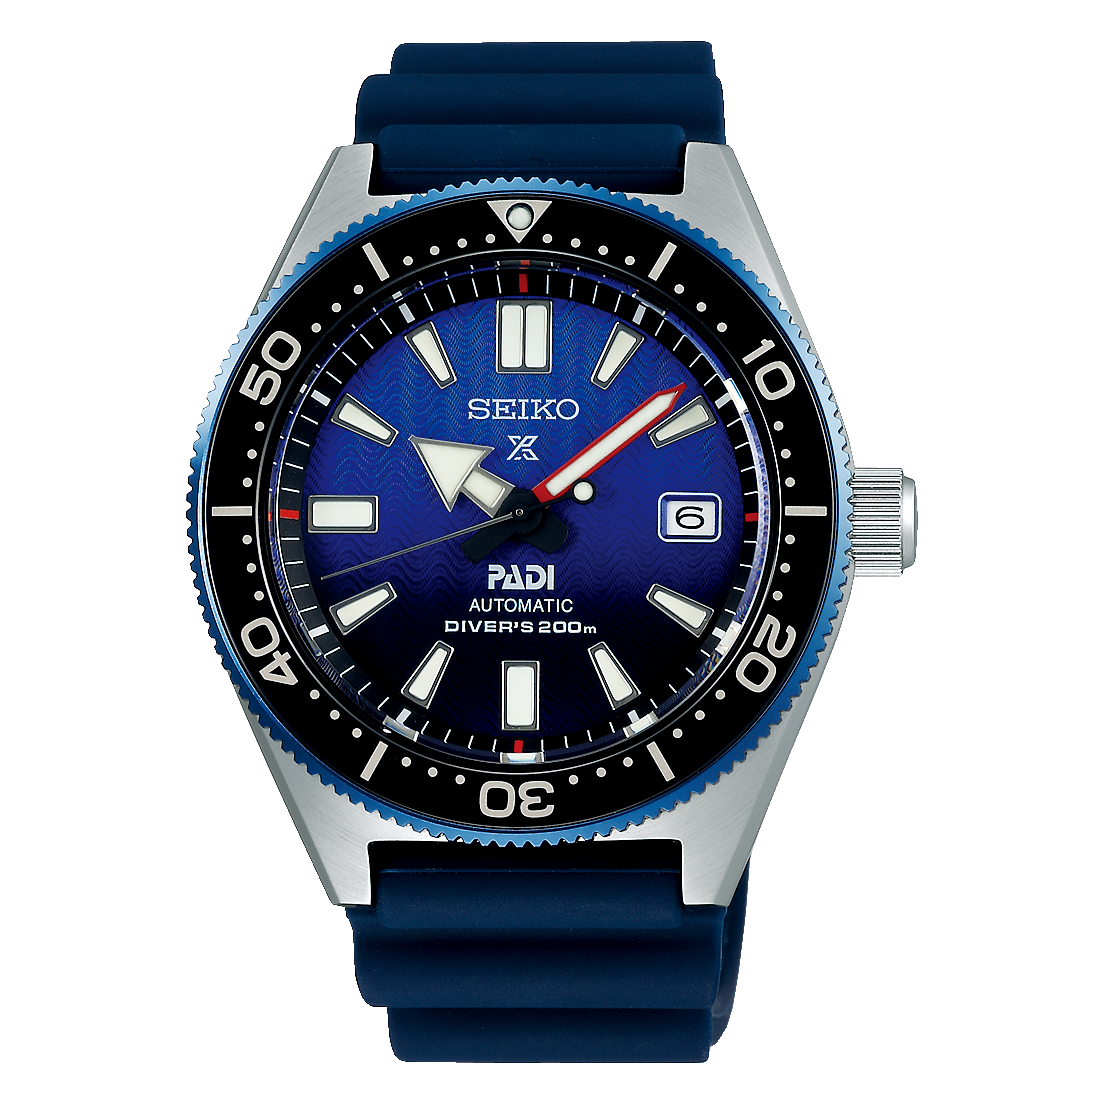 Seiko Prospex Stainless Steel Special Edition Padi Diver's 200m Watch (SPB071)